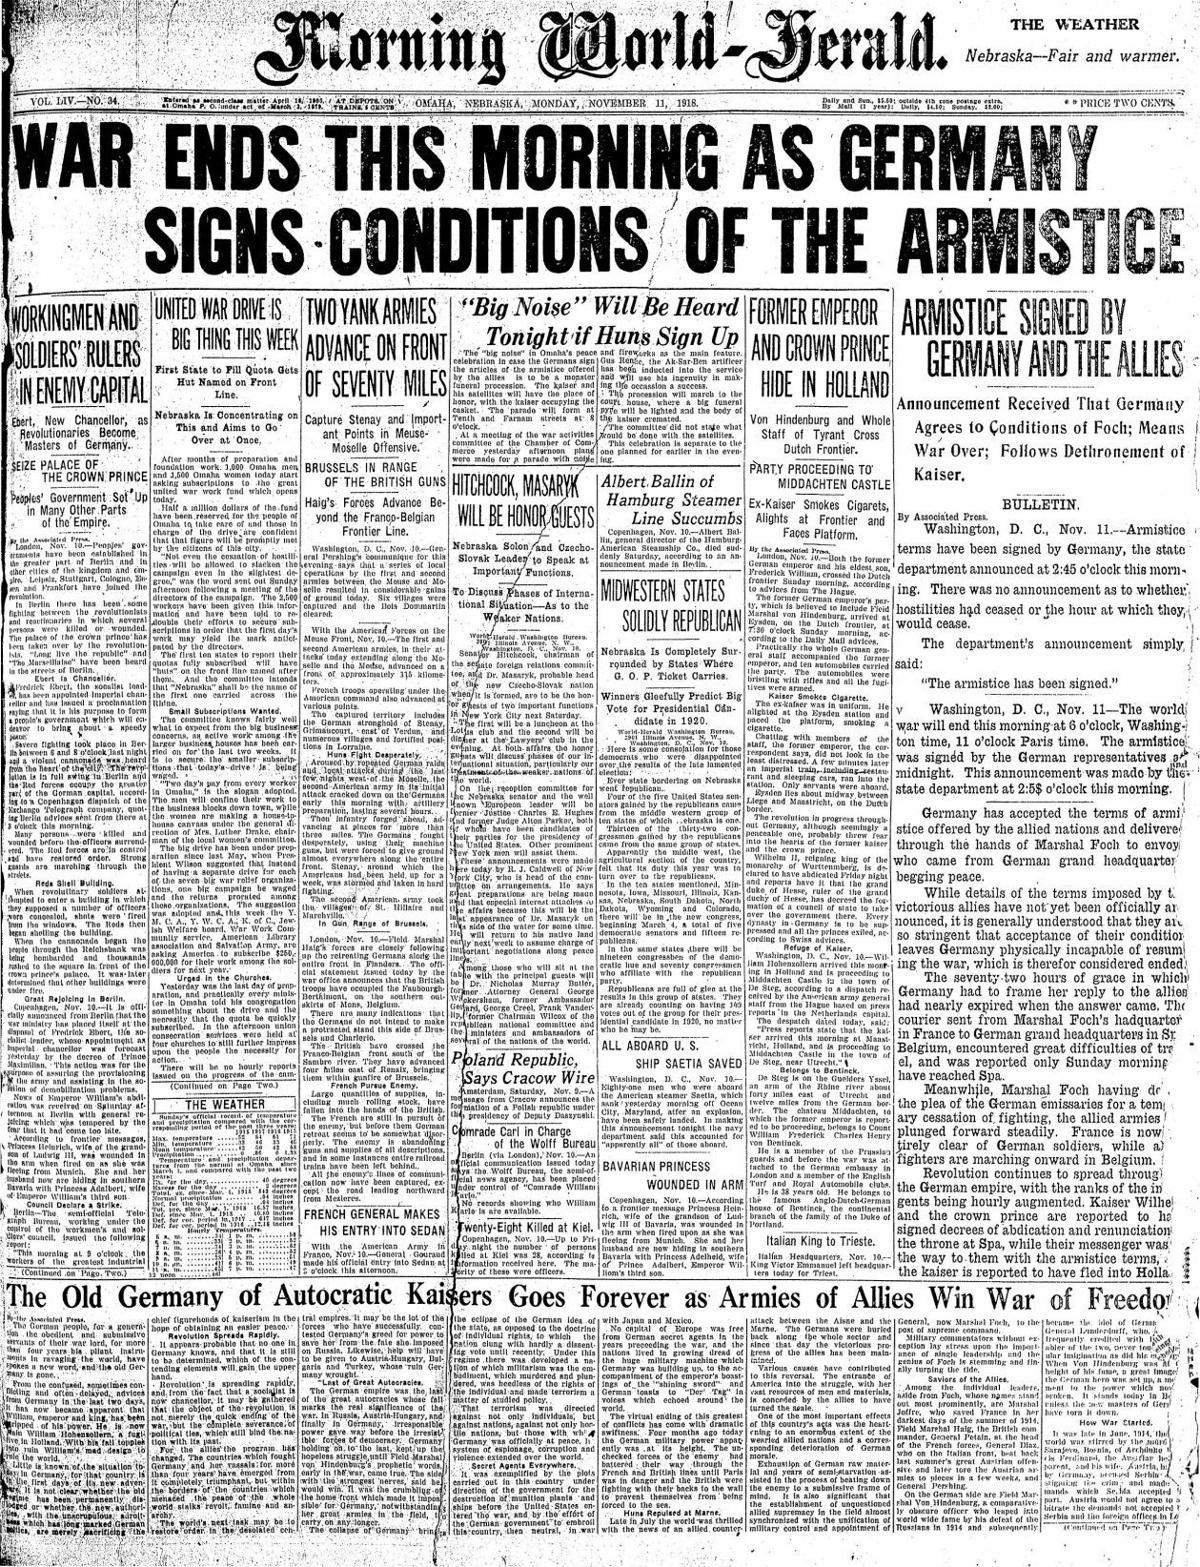 Morning World-Herald front page on Armistice Day